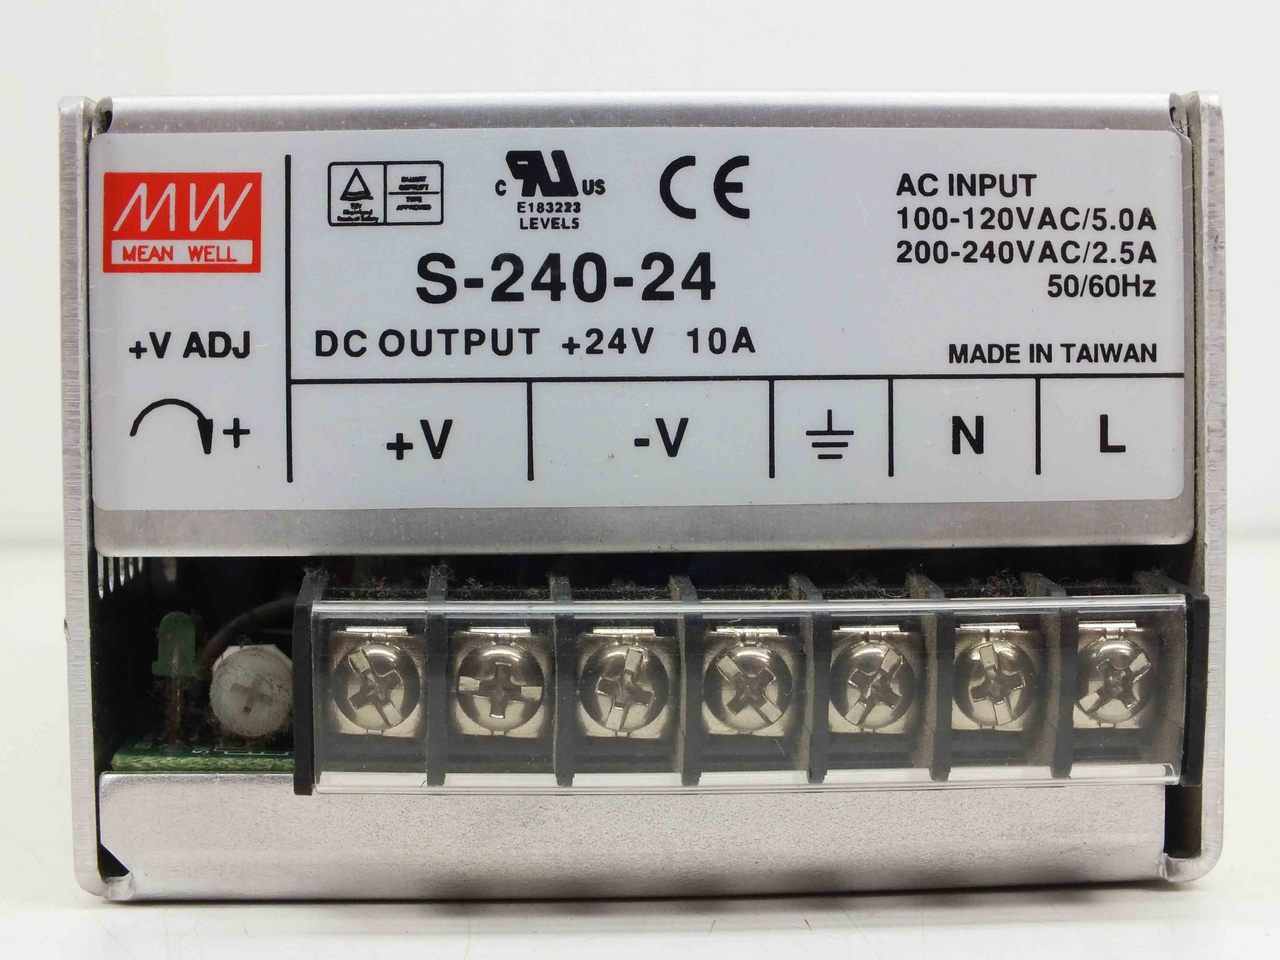 Mean Well S-240-24 Single Output Switching Power Supply 24V 10A 240W 7-Pin